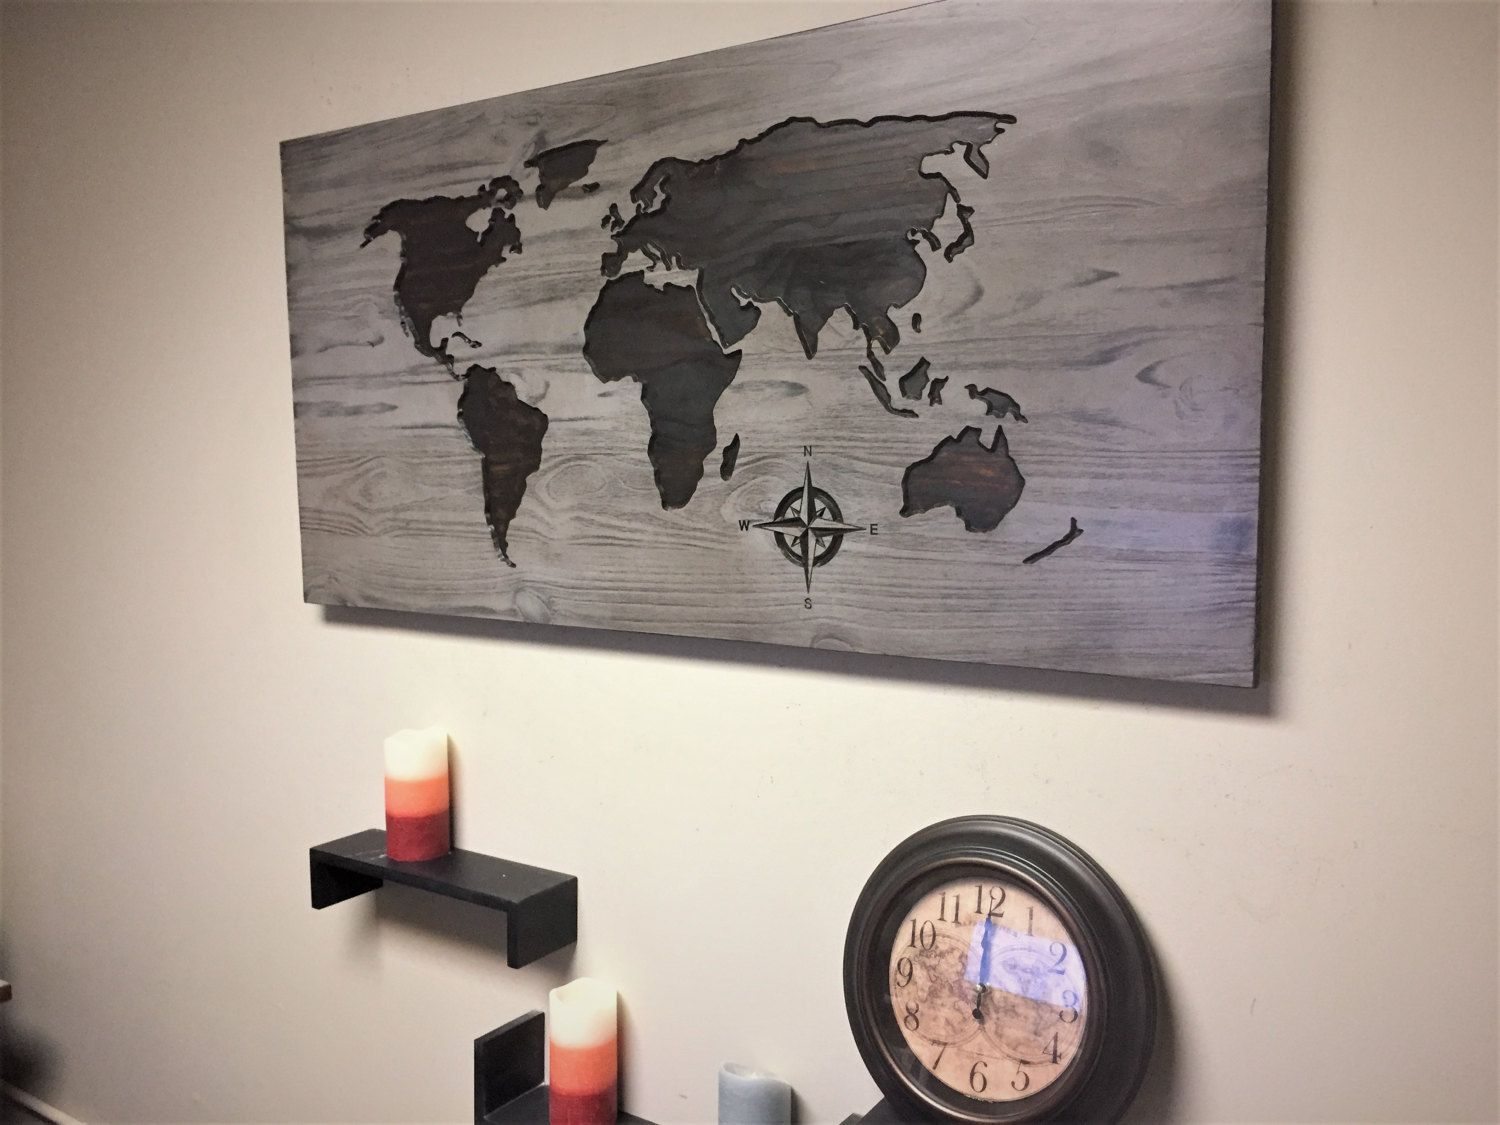 World map home decor carved wood wall art stained wooden map world map home decor carved wood wall art stained wooden map rustic wood hand painted cnc wall decor gumiabroncs Gallery